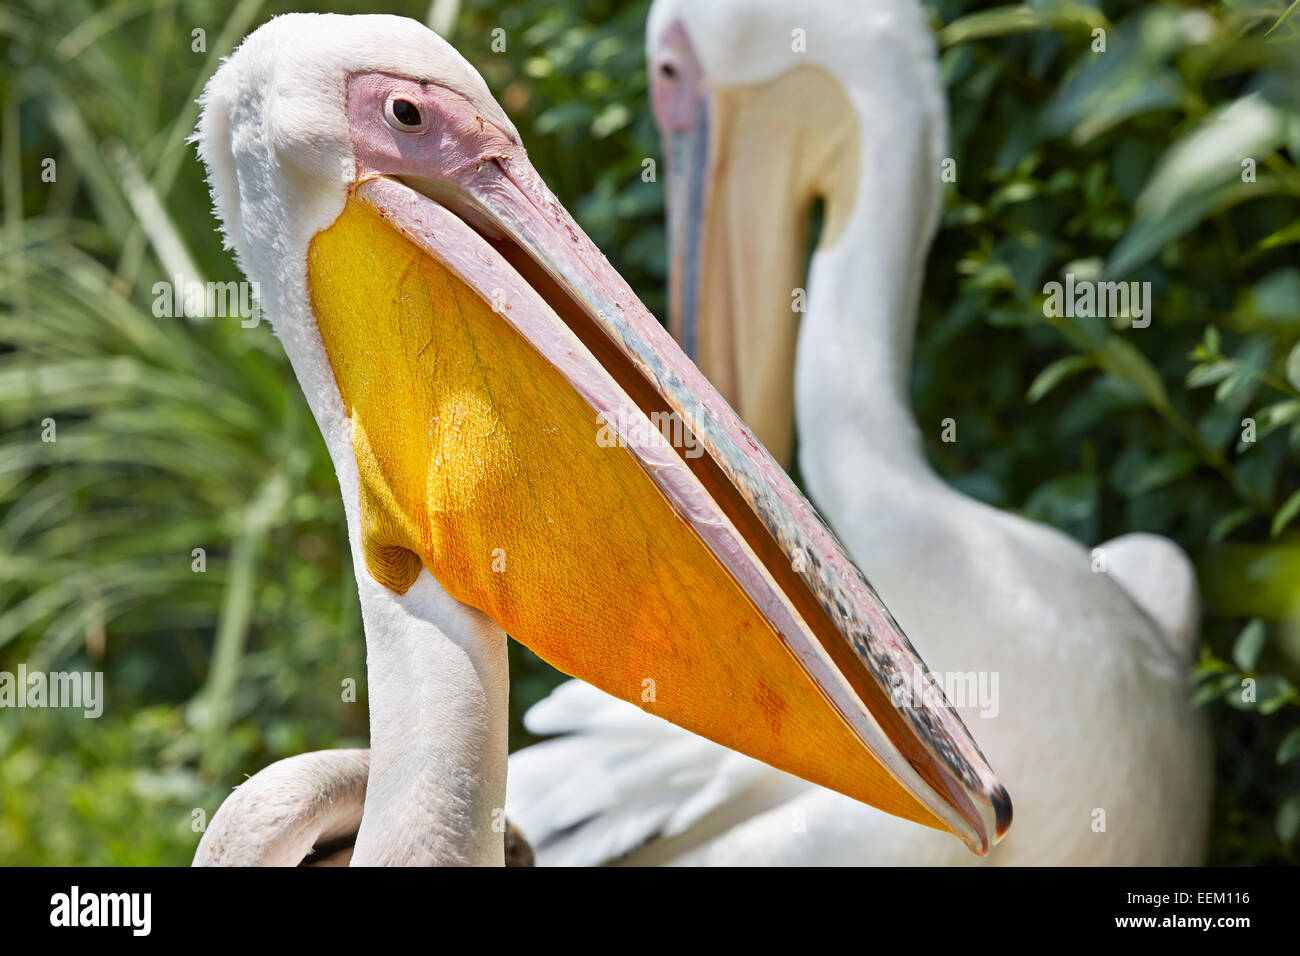 Great white pelican. Scientific name: Pelecanus onocrotalus. - Stock Image